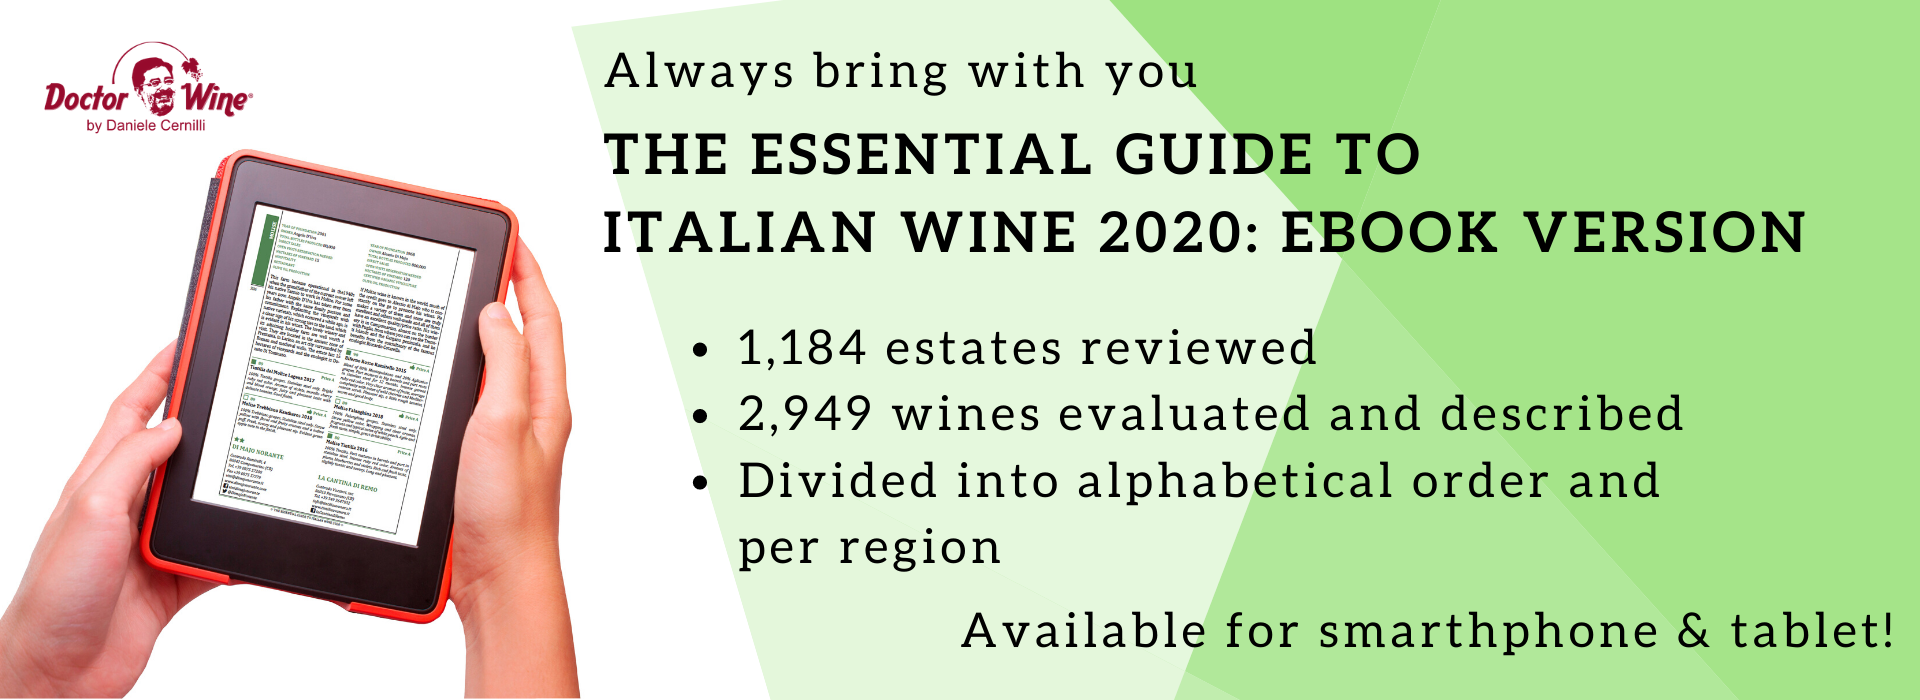 eBook The Essential Guide to Italian Wine 2020